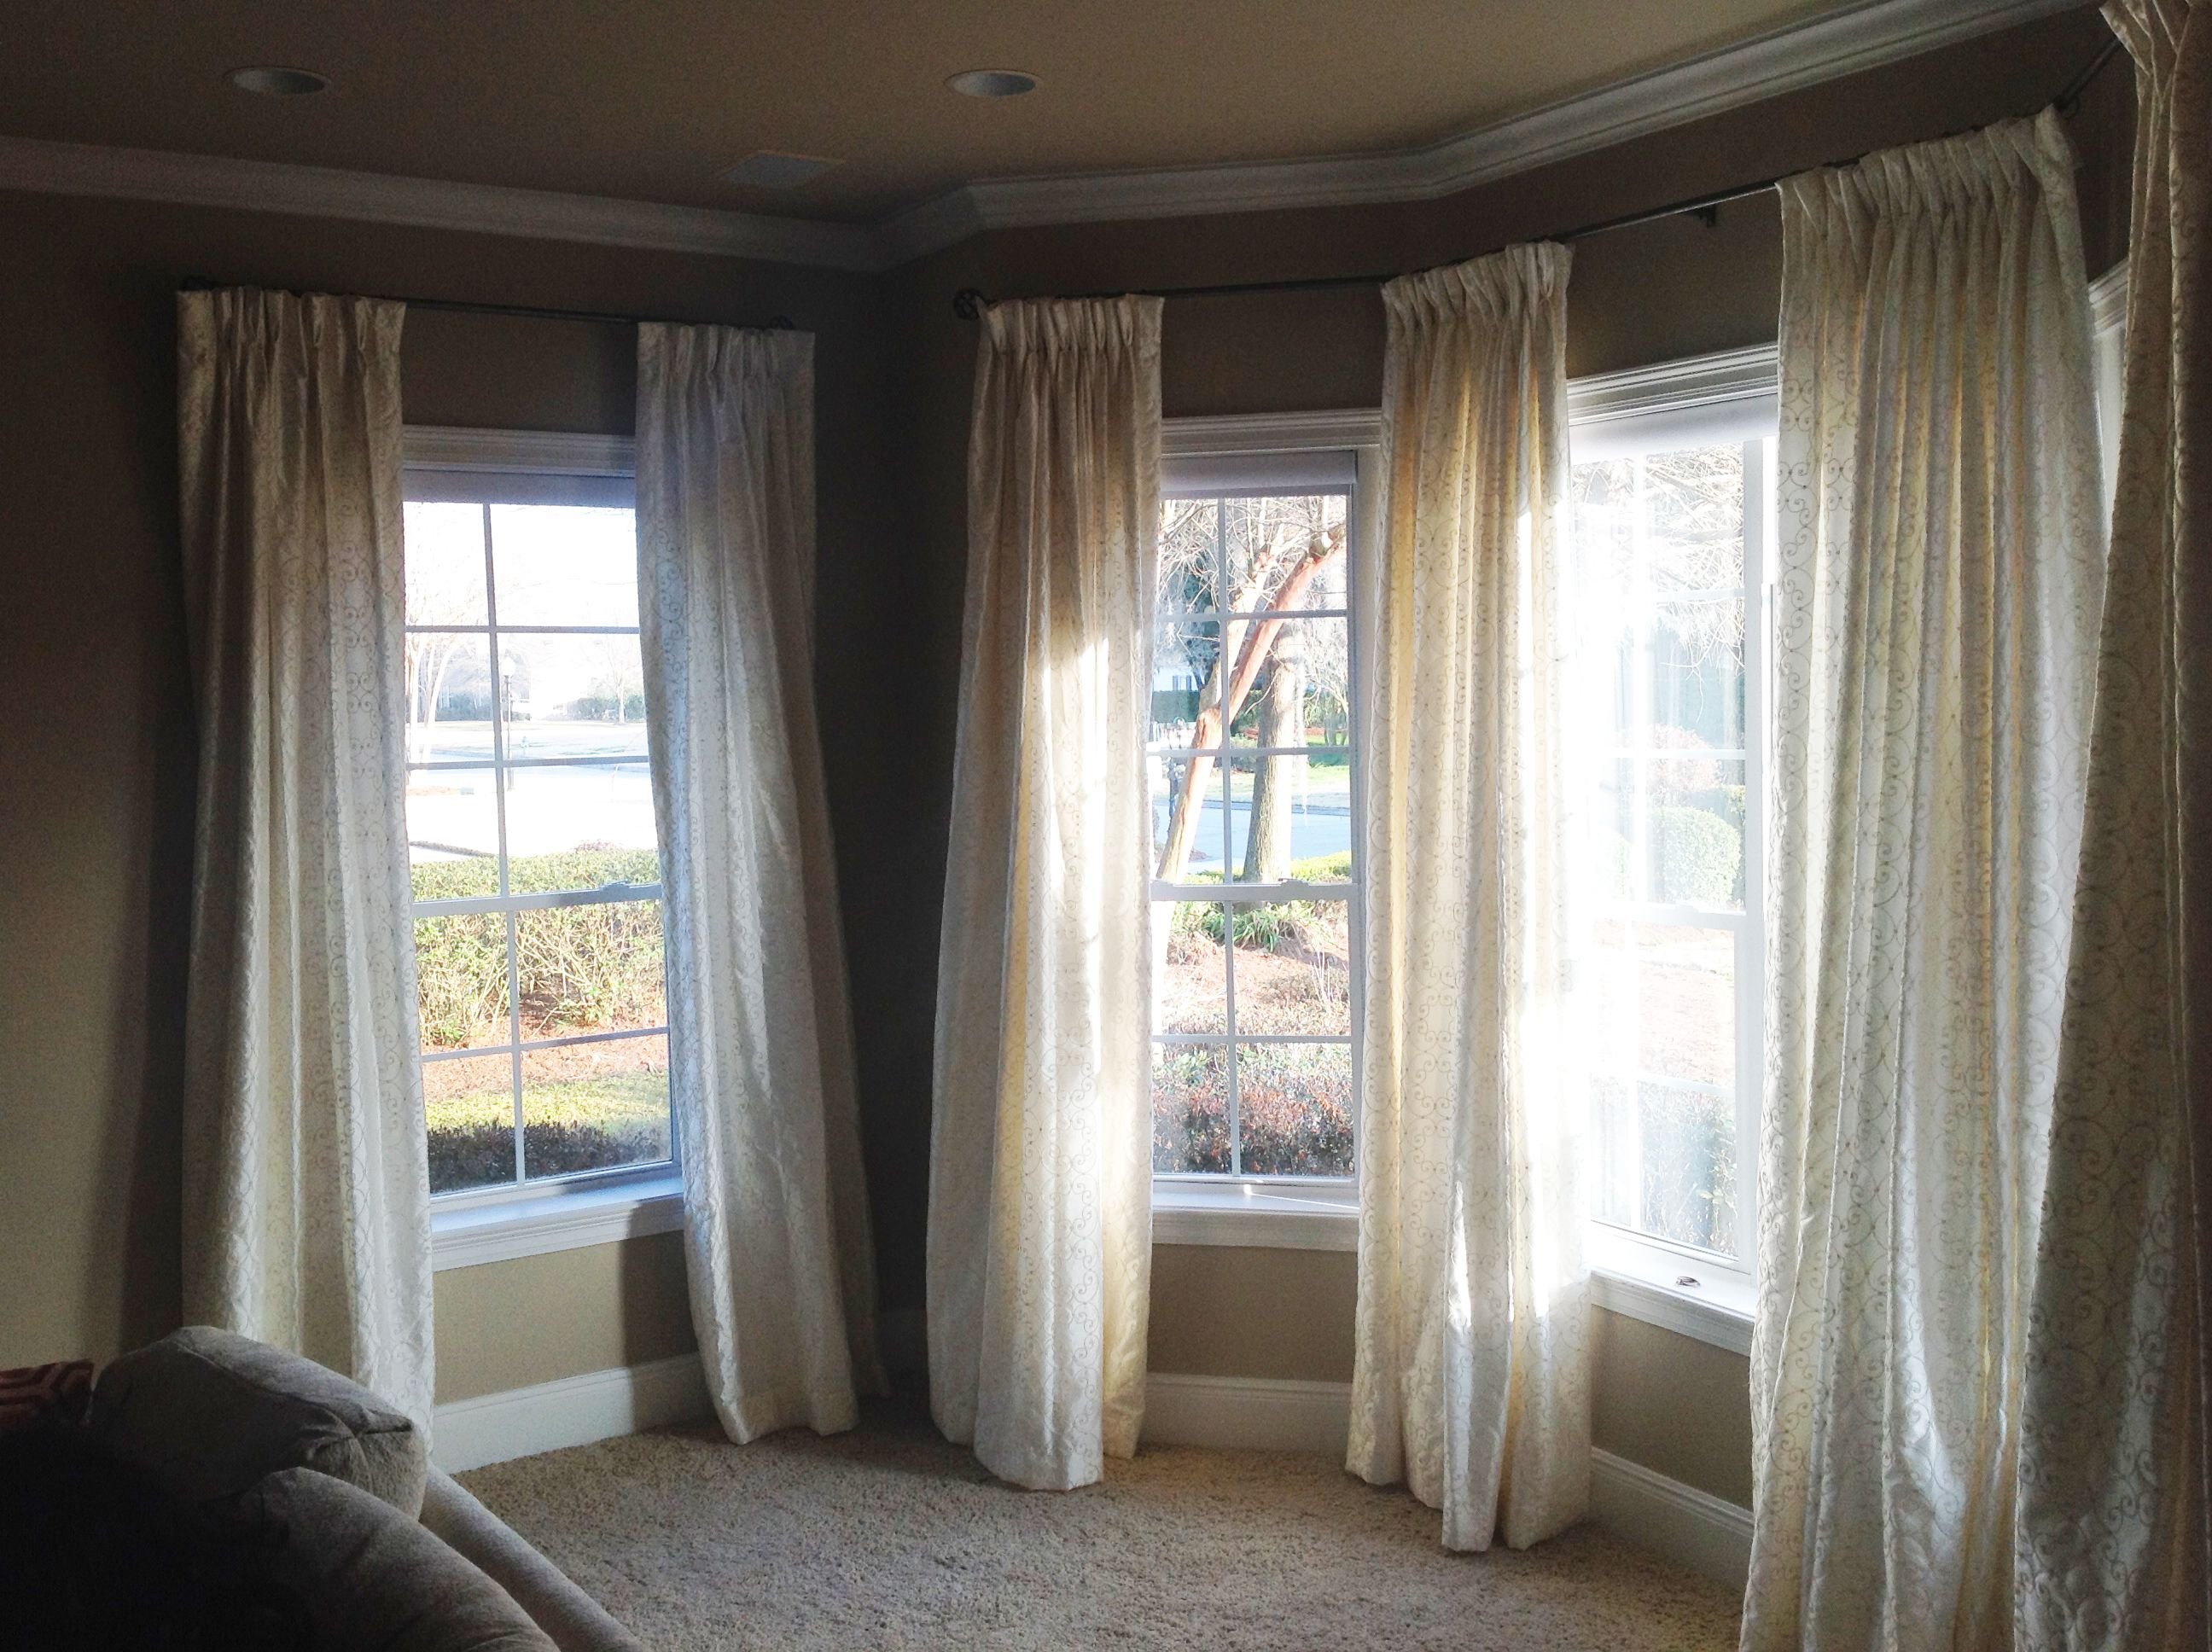 Luxury Custom Curtains, Roman Shades And Designer Accent Pillows Small